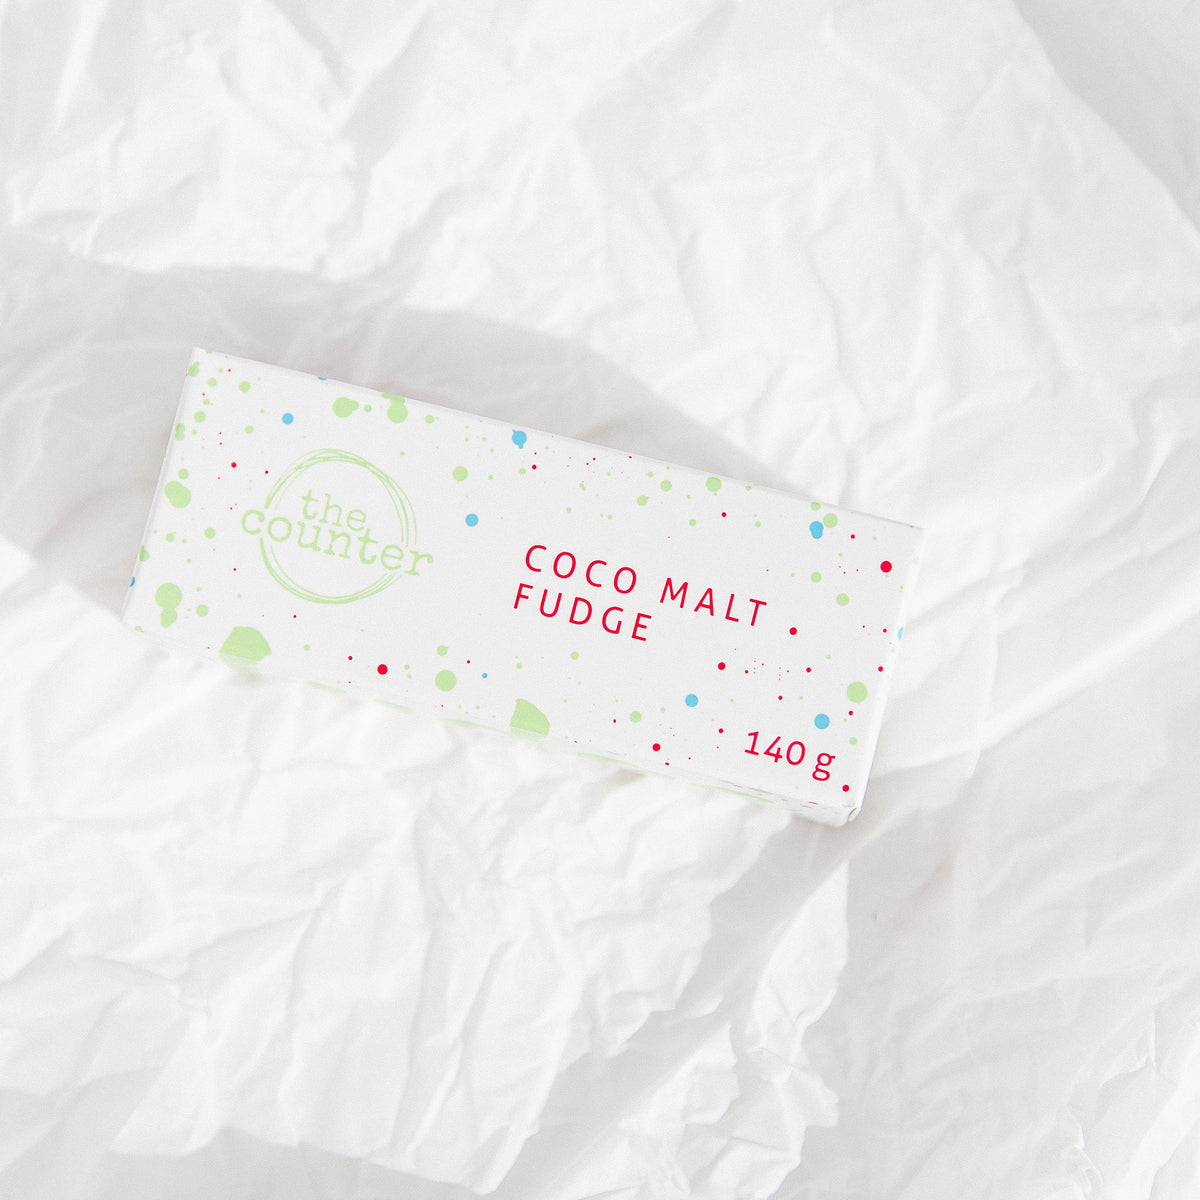 Coco Malt Fudge